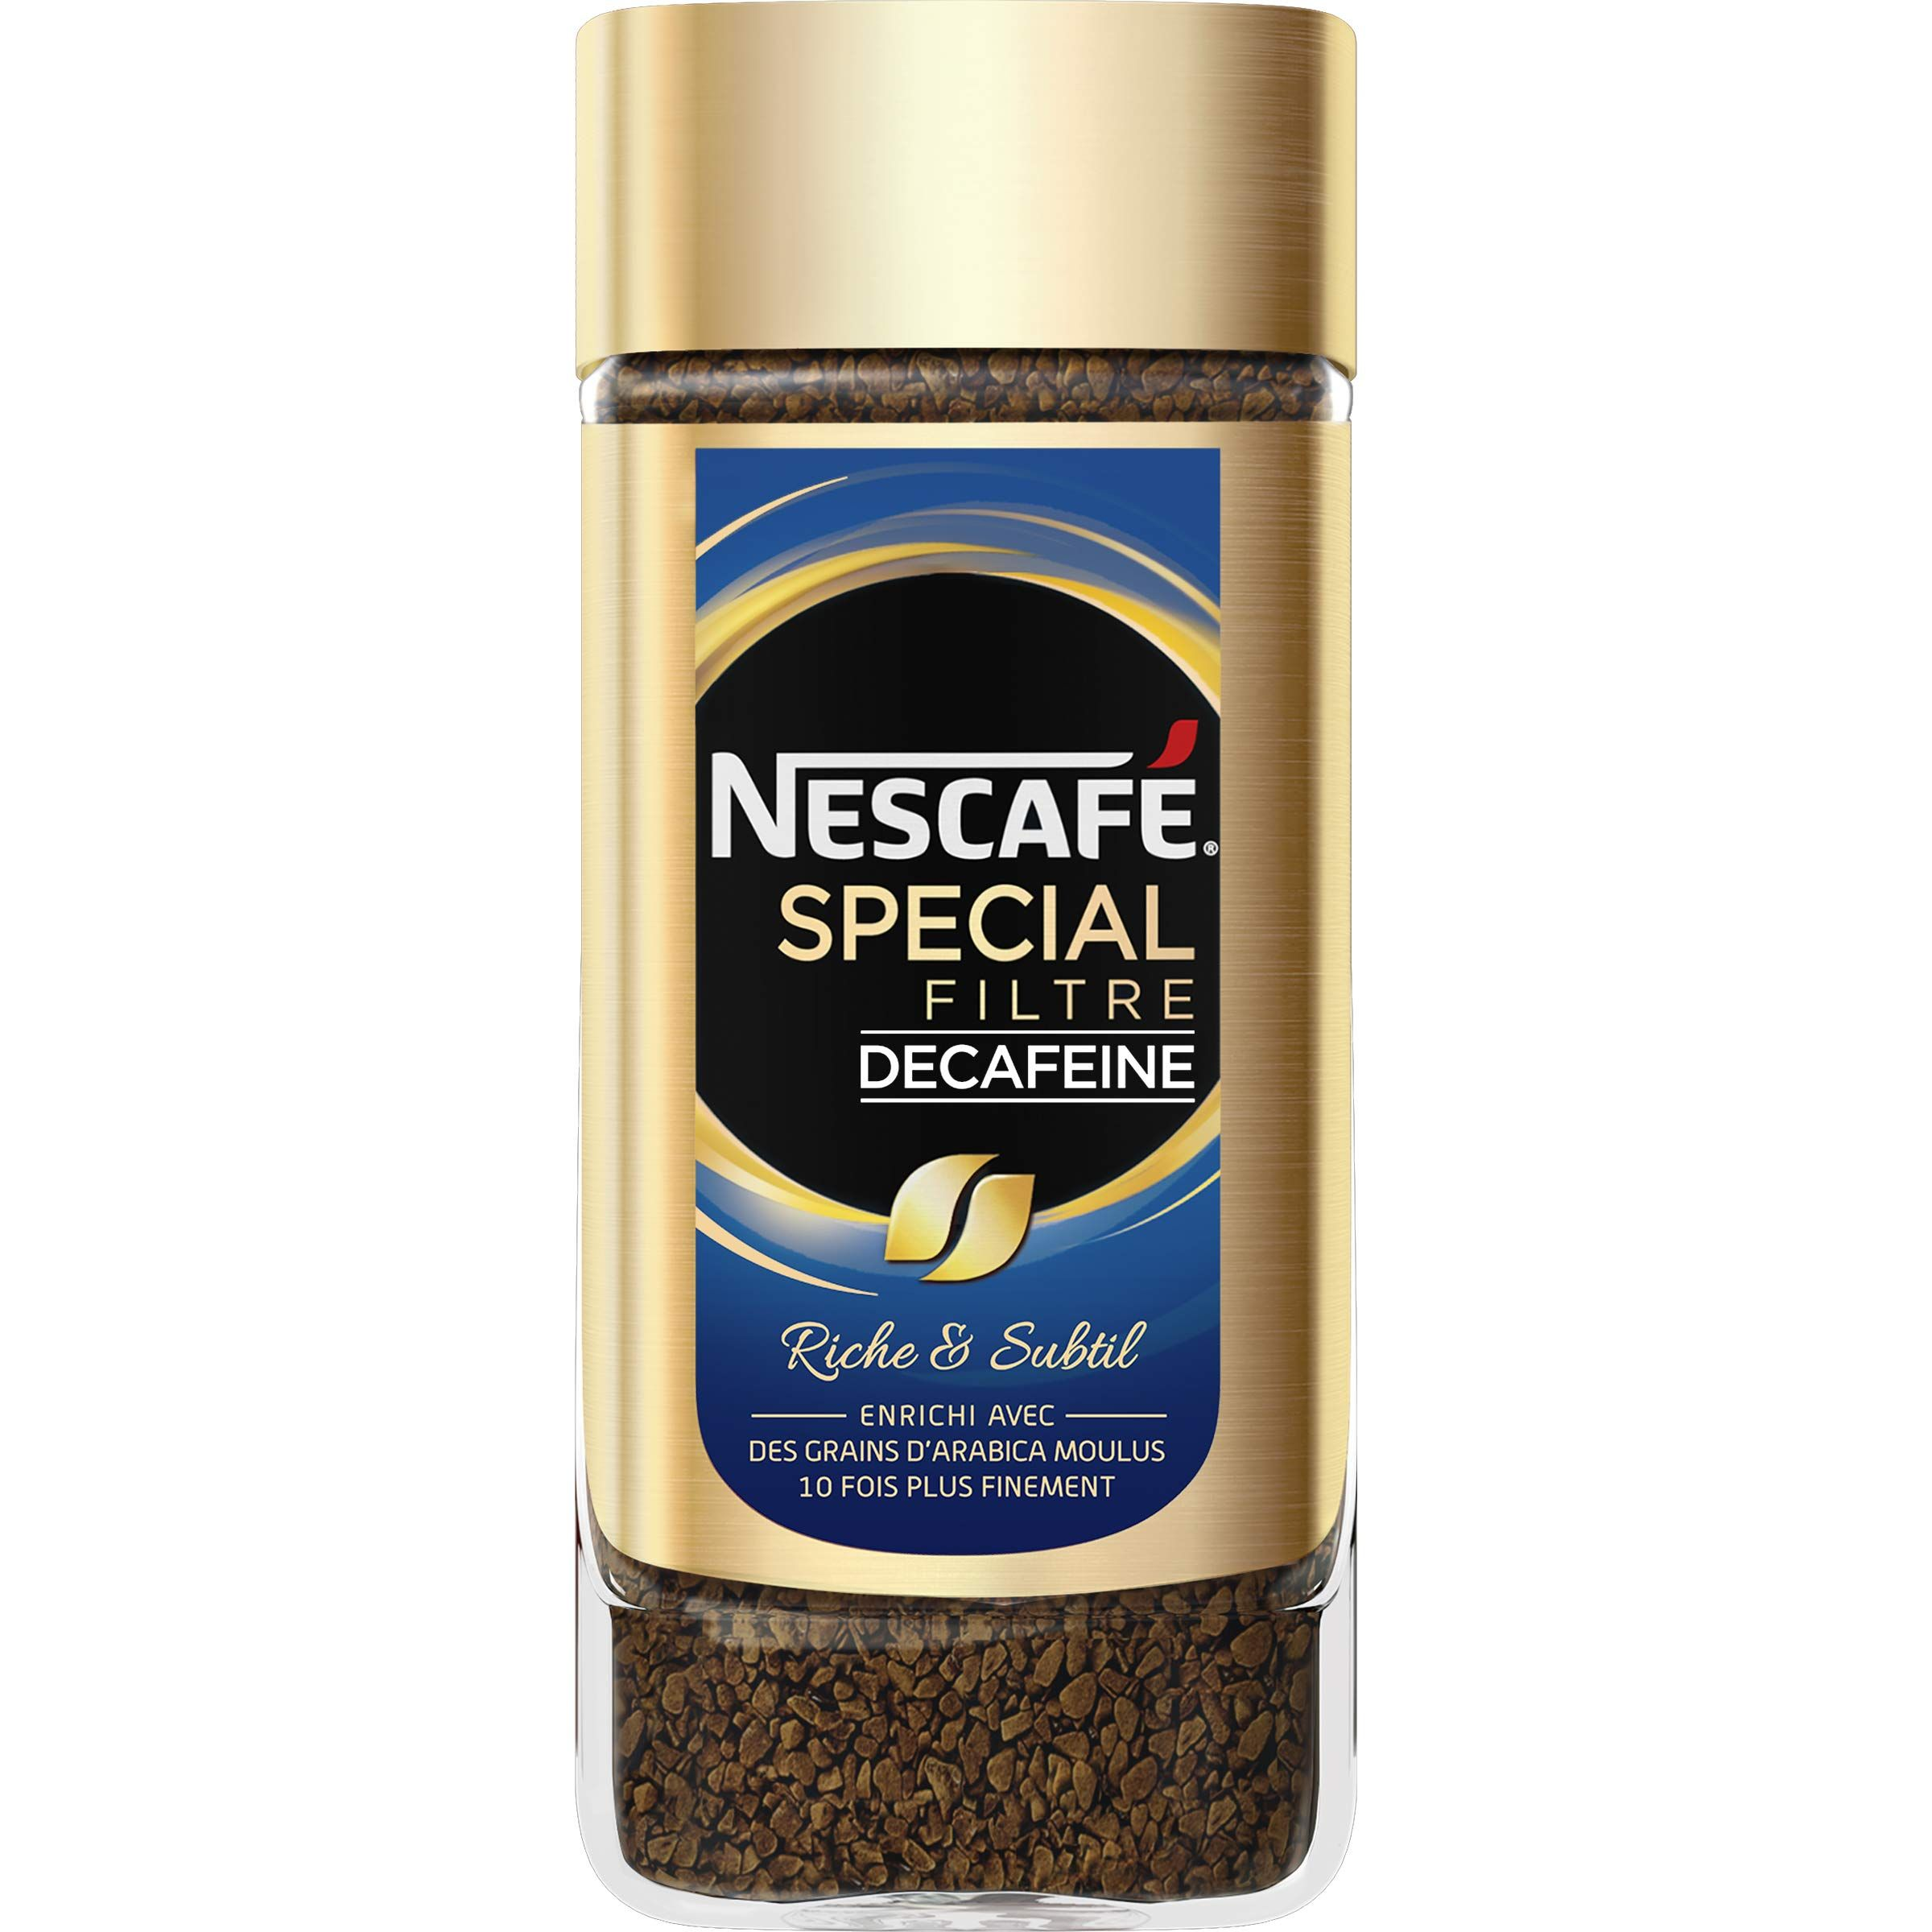 Nescafe Decafeine Soluble 100 G In 2020 Nescafe Cafe Soluble